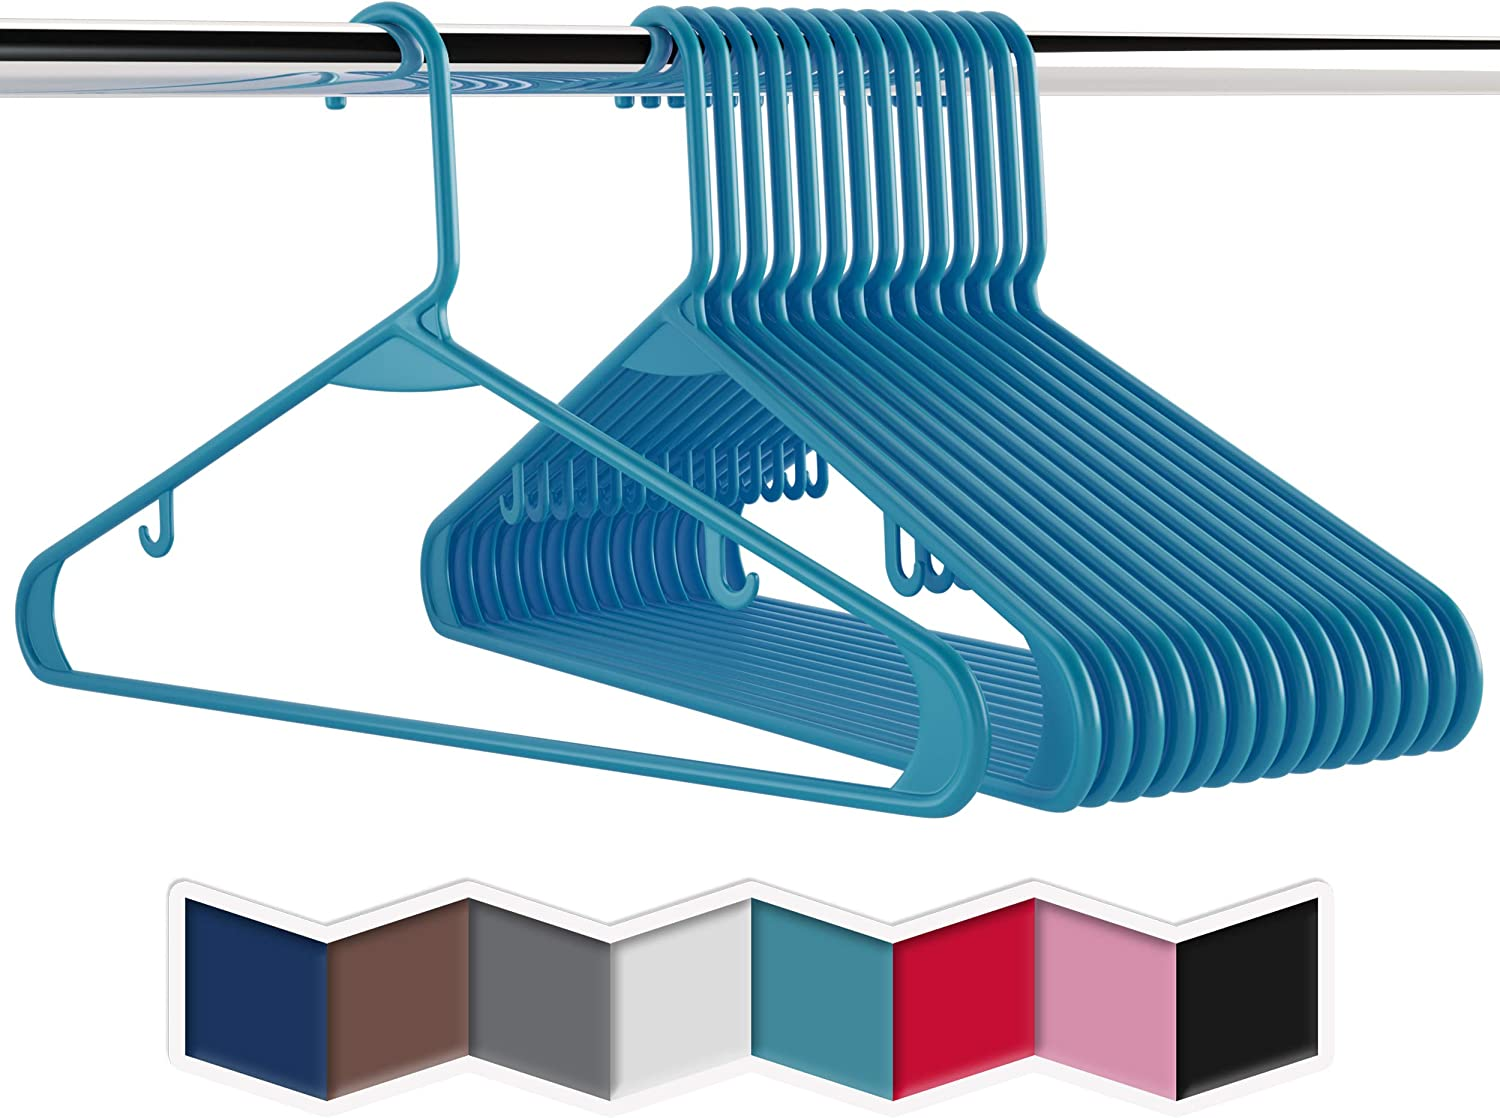 Plastic Clothes Hangers (20, 40, & 60 Packs) Heavy Duty Durable Coat and Clothes Hangers | Vibrant Colors Adult Hangers | Lightweight Space Saving Laundry Hangers (20 Pack - Blue)